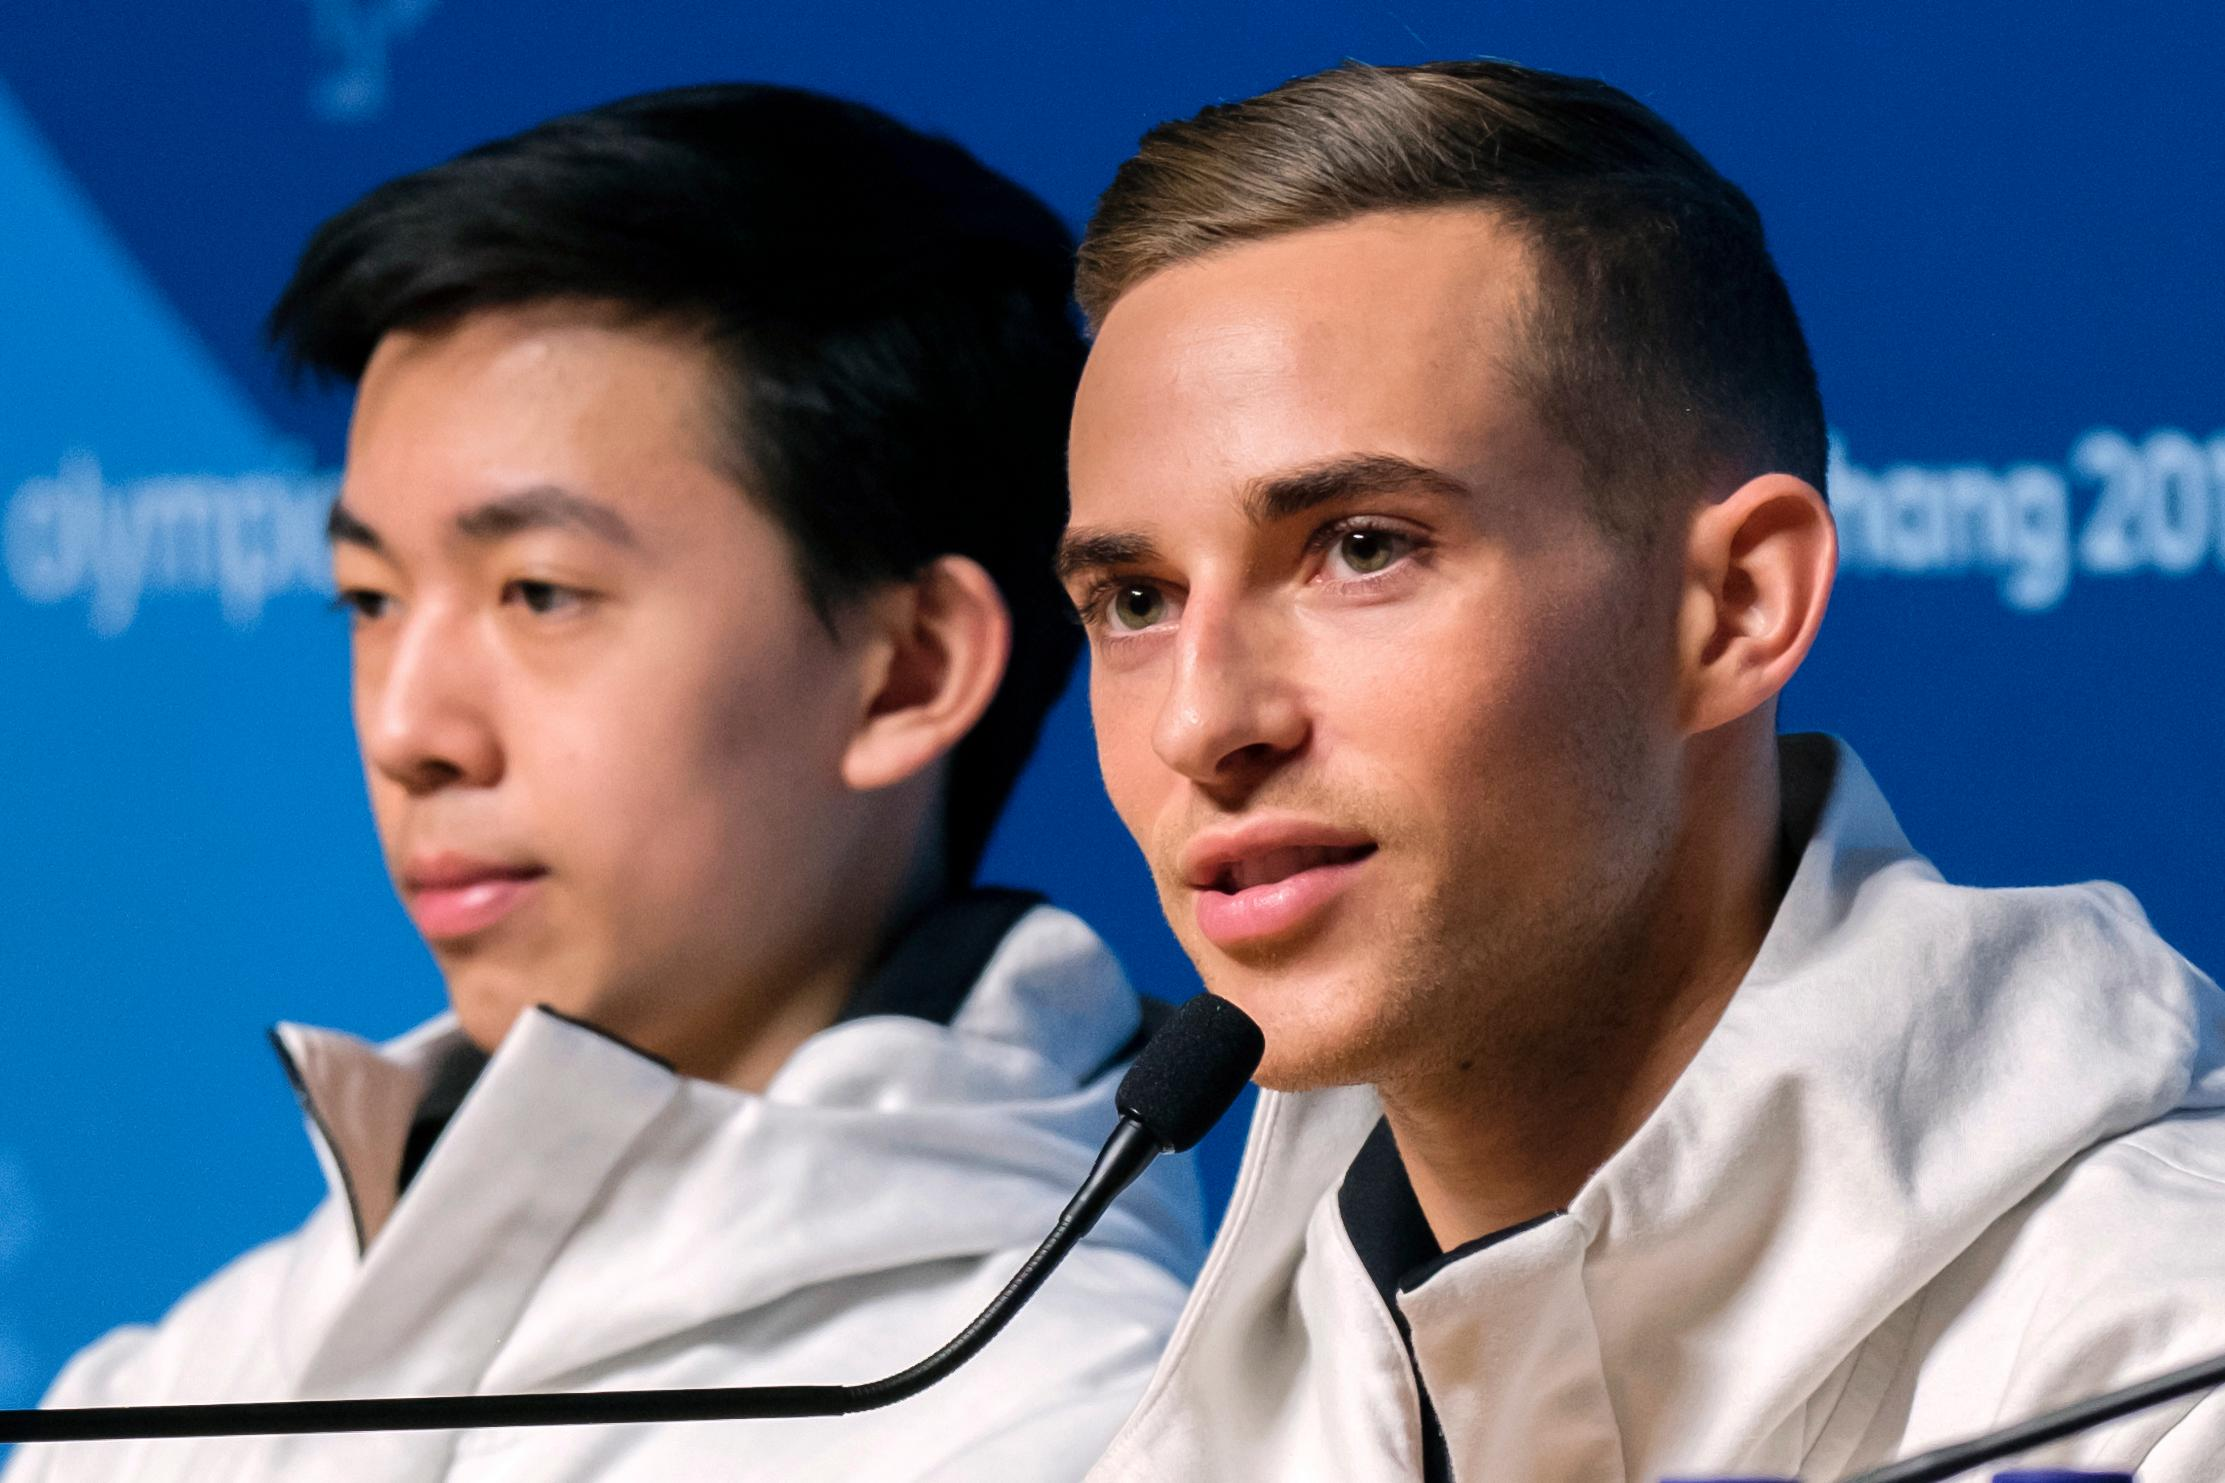 "In this Tuesday, Feb. 13, 2018 photo, United States figure skaters Vincent Zhou, left, and Adam Rippon answer questions during a press conference at the 2018 Winter Olympics in Pyeongchang, South Korea. Food is a big deal for Olympians. The U.S. team has its own chefs and dietitians, as well as two ""nutrition centers"" at the Winter Olympics. Zhou said he needs a lot of carbs, ""before, between and after sessions,"" to fend off fatigue. While Rippon said sheer abundance can be a danger for athletes.  (AP Photo/J. David Ake)"